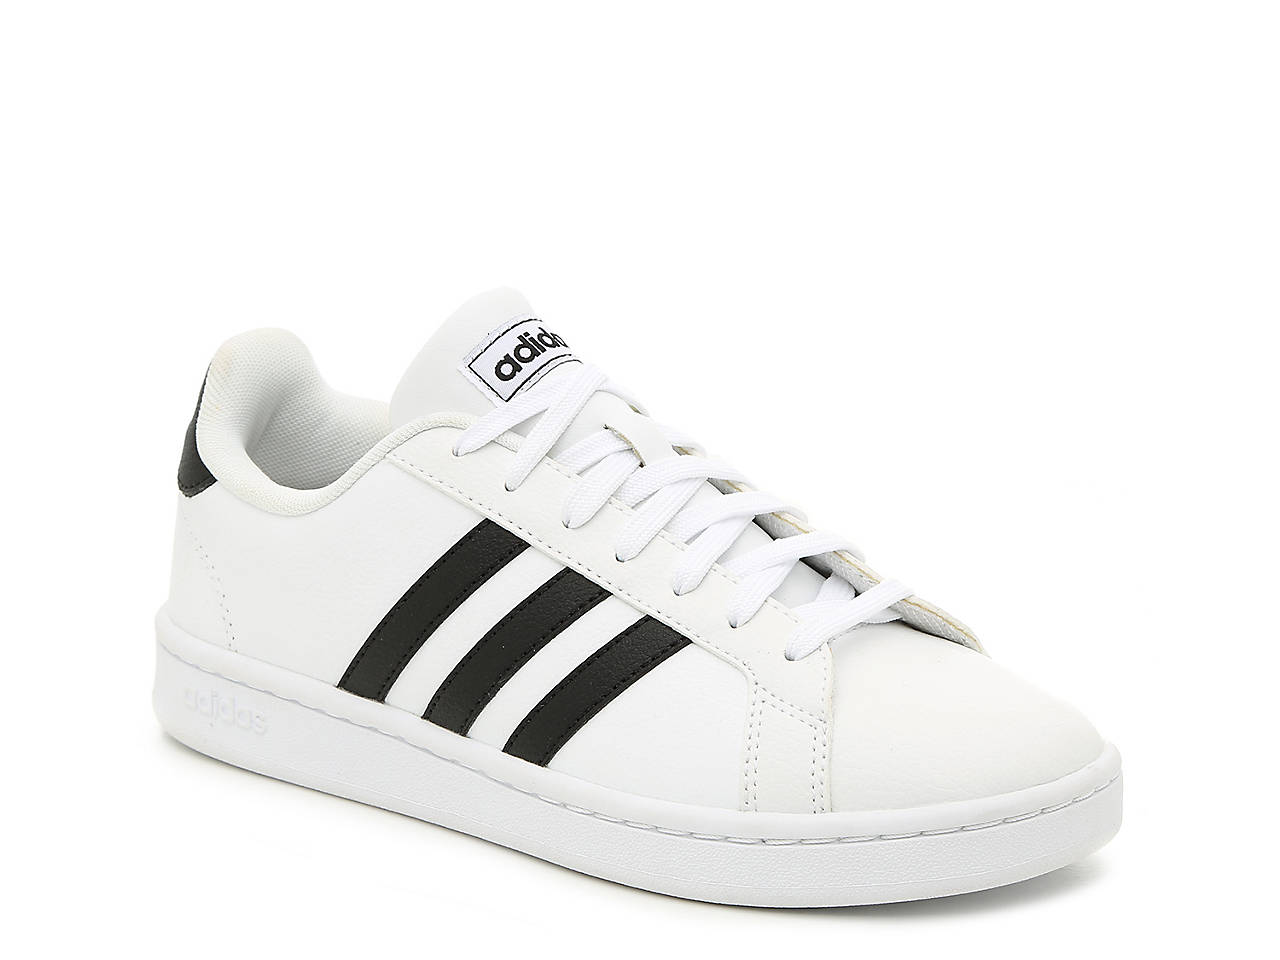 6a5e0c4ff adidas Grand Court Sneaker - Women s Women s Shoes